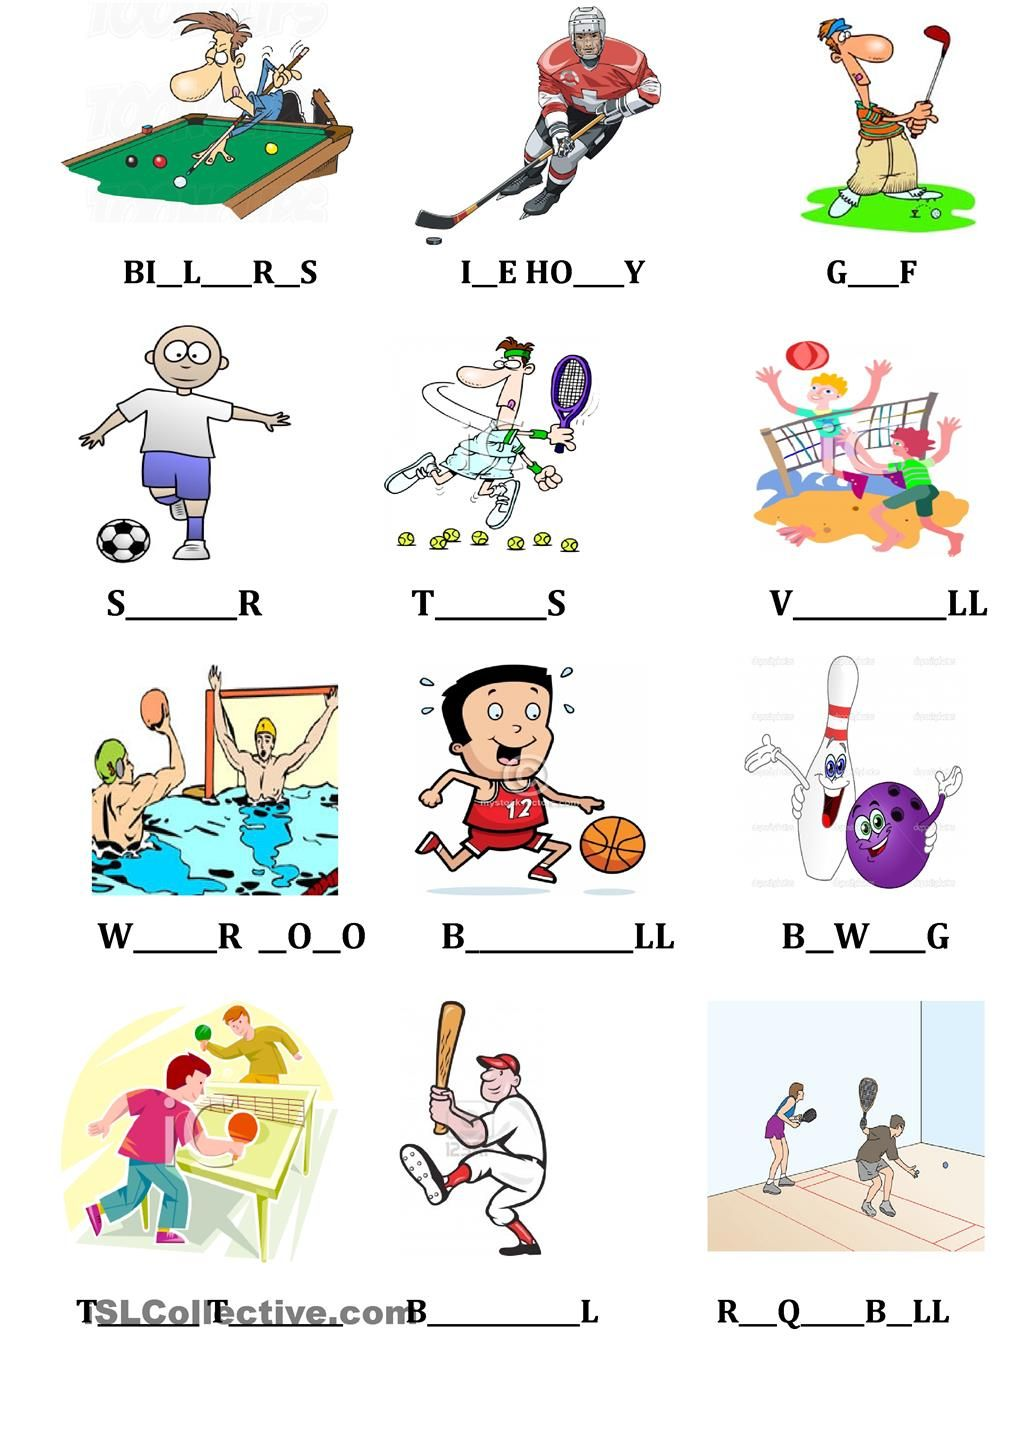 sports camping flashcard spelling dictionary sports and games. Black Bedroom Furniture Sets. Home Design Ideas